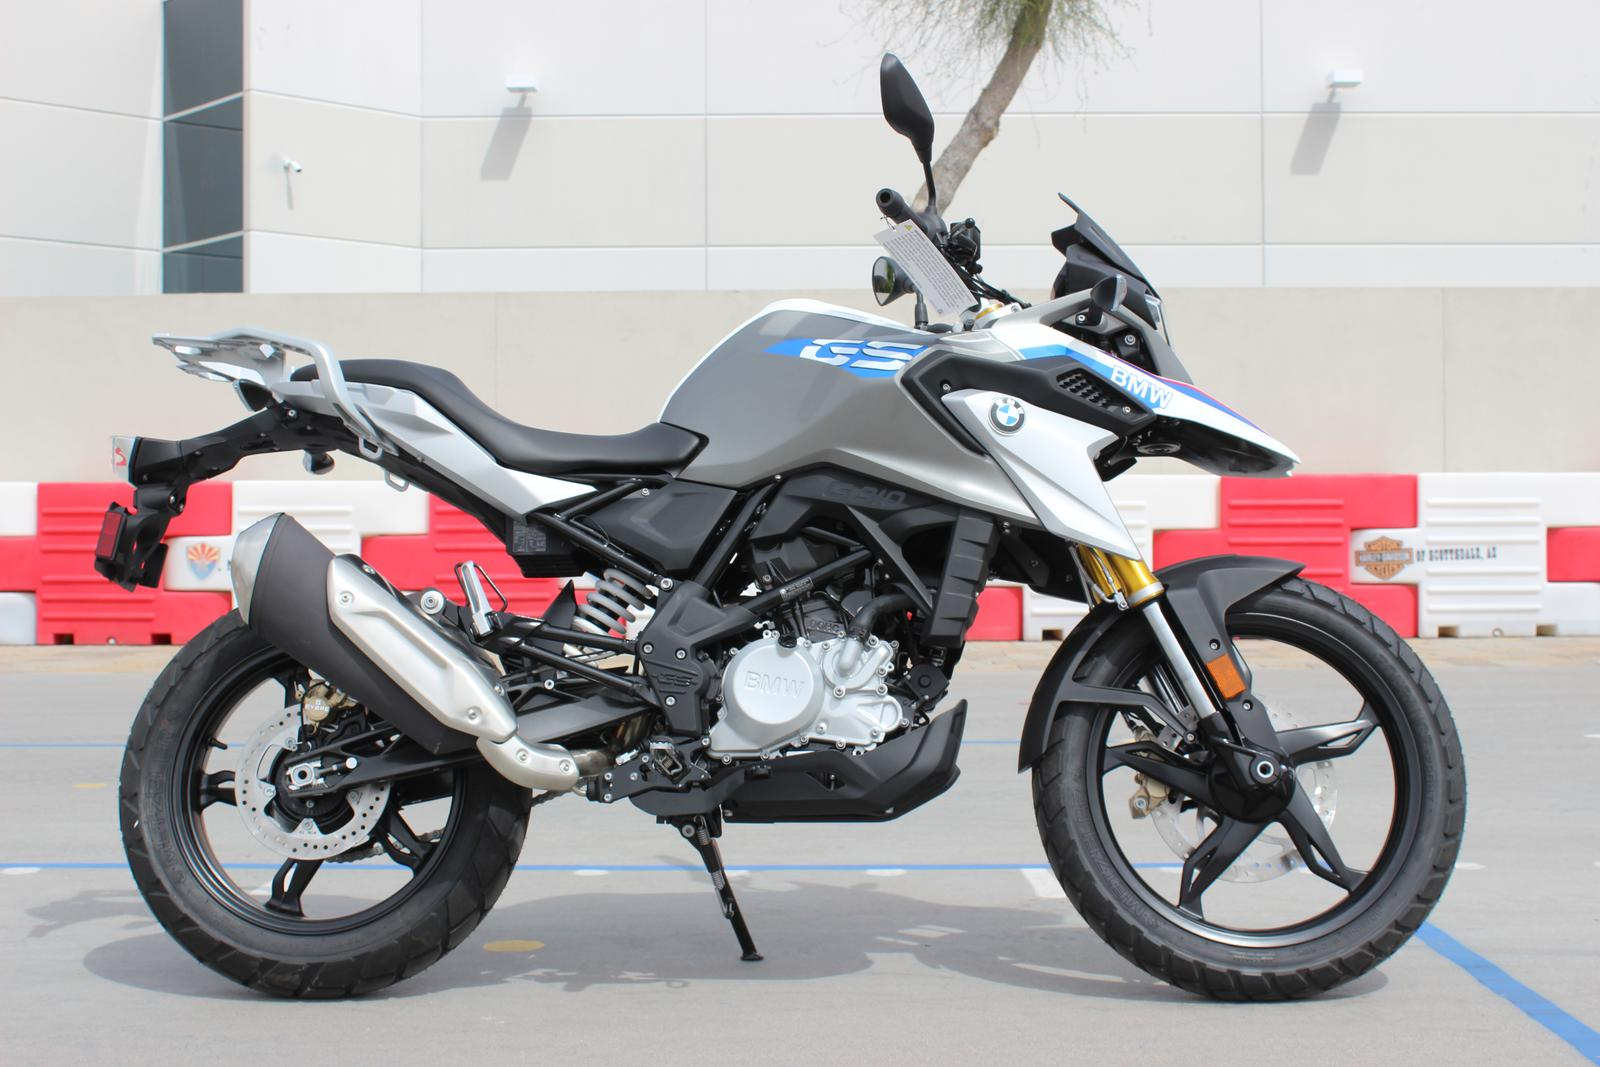 2019 BMW G310 GS DEMO for sale in Scottsdale, AZ | GO AZ